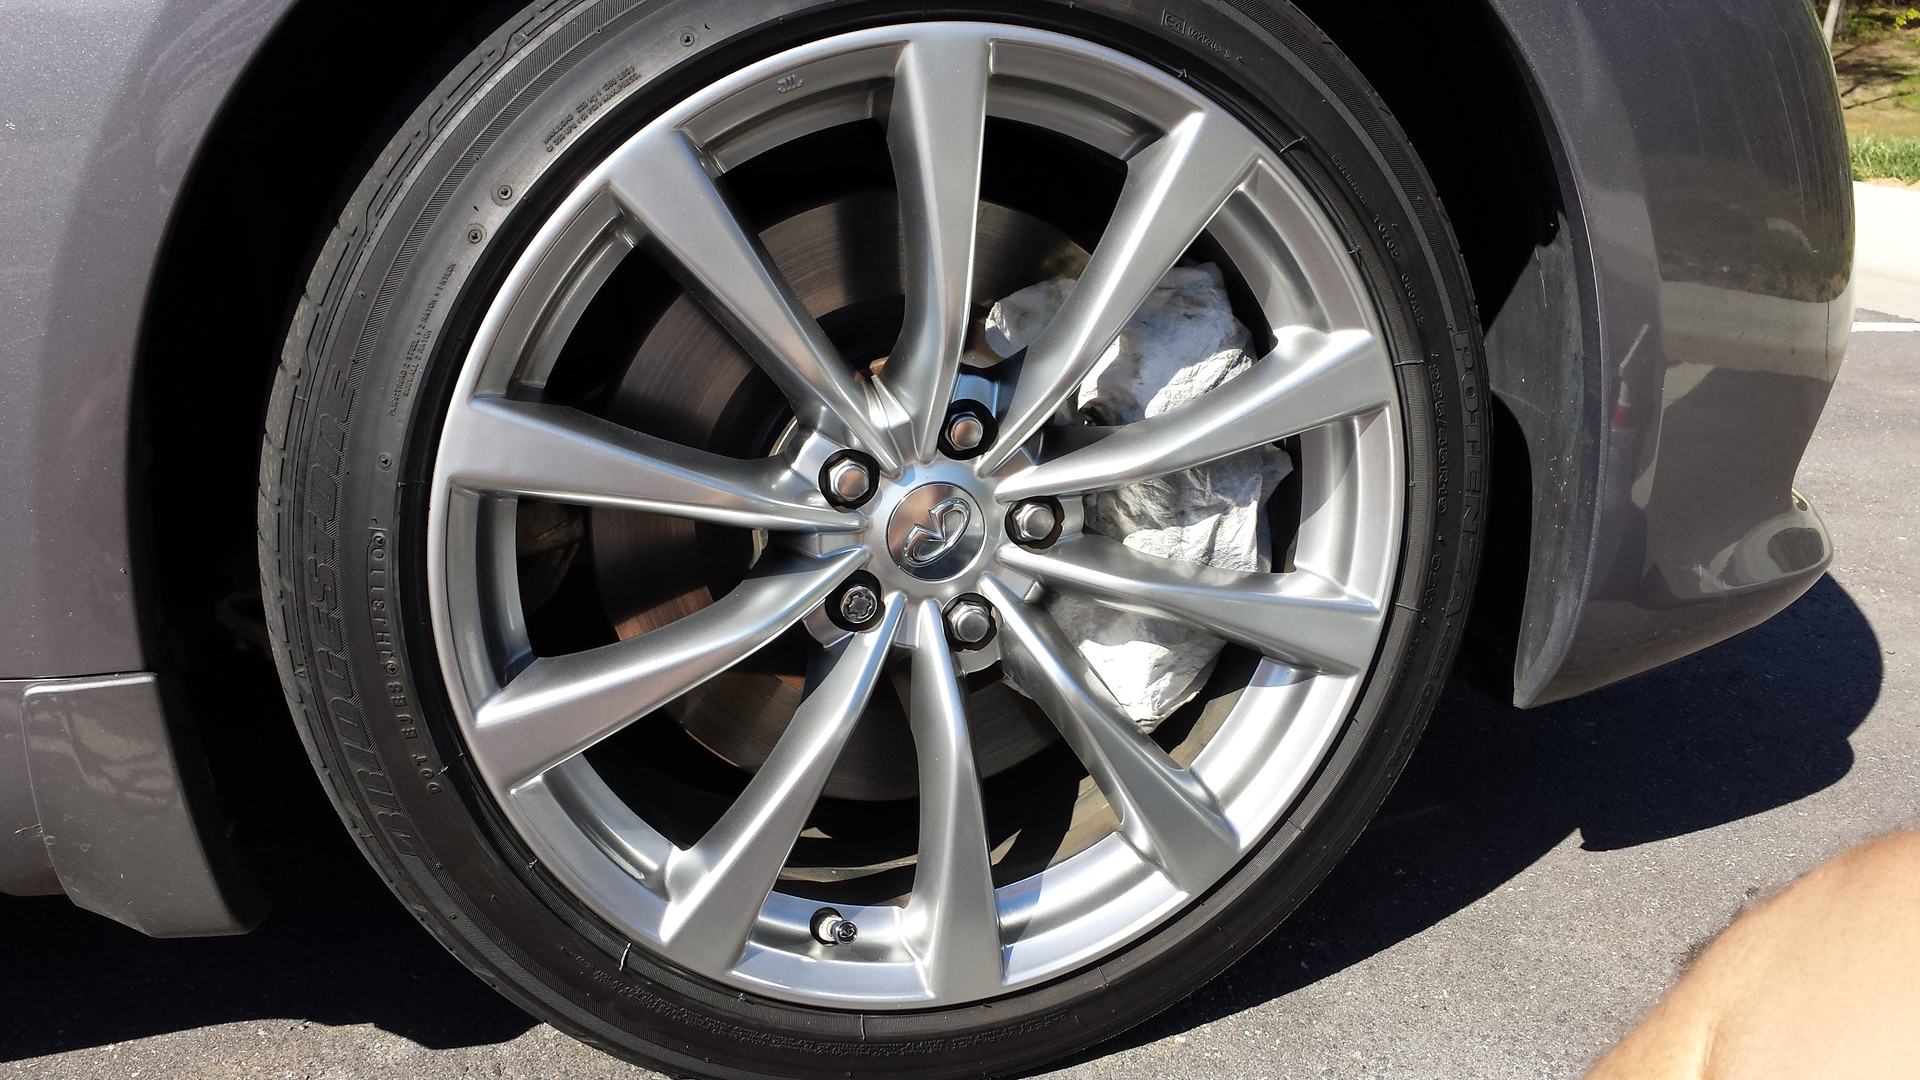 Rim Repair Cost >> Prince Wheel Services Mobile Wheel Repair Bent Wheel Repair